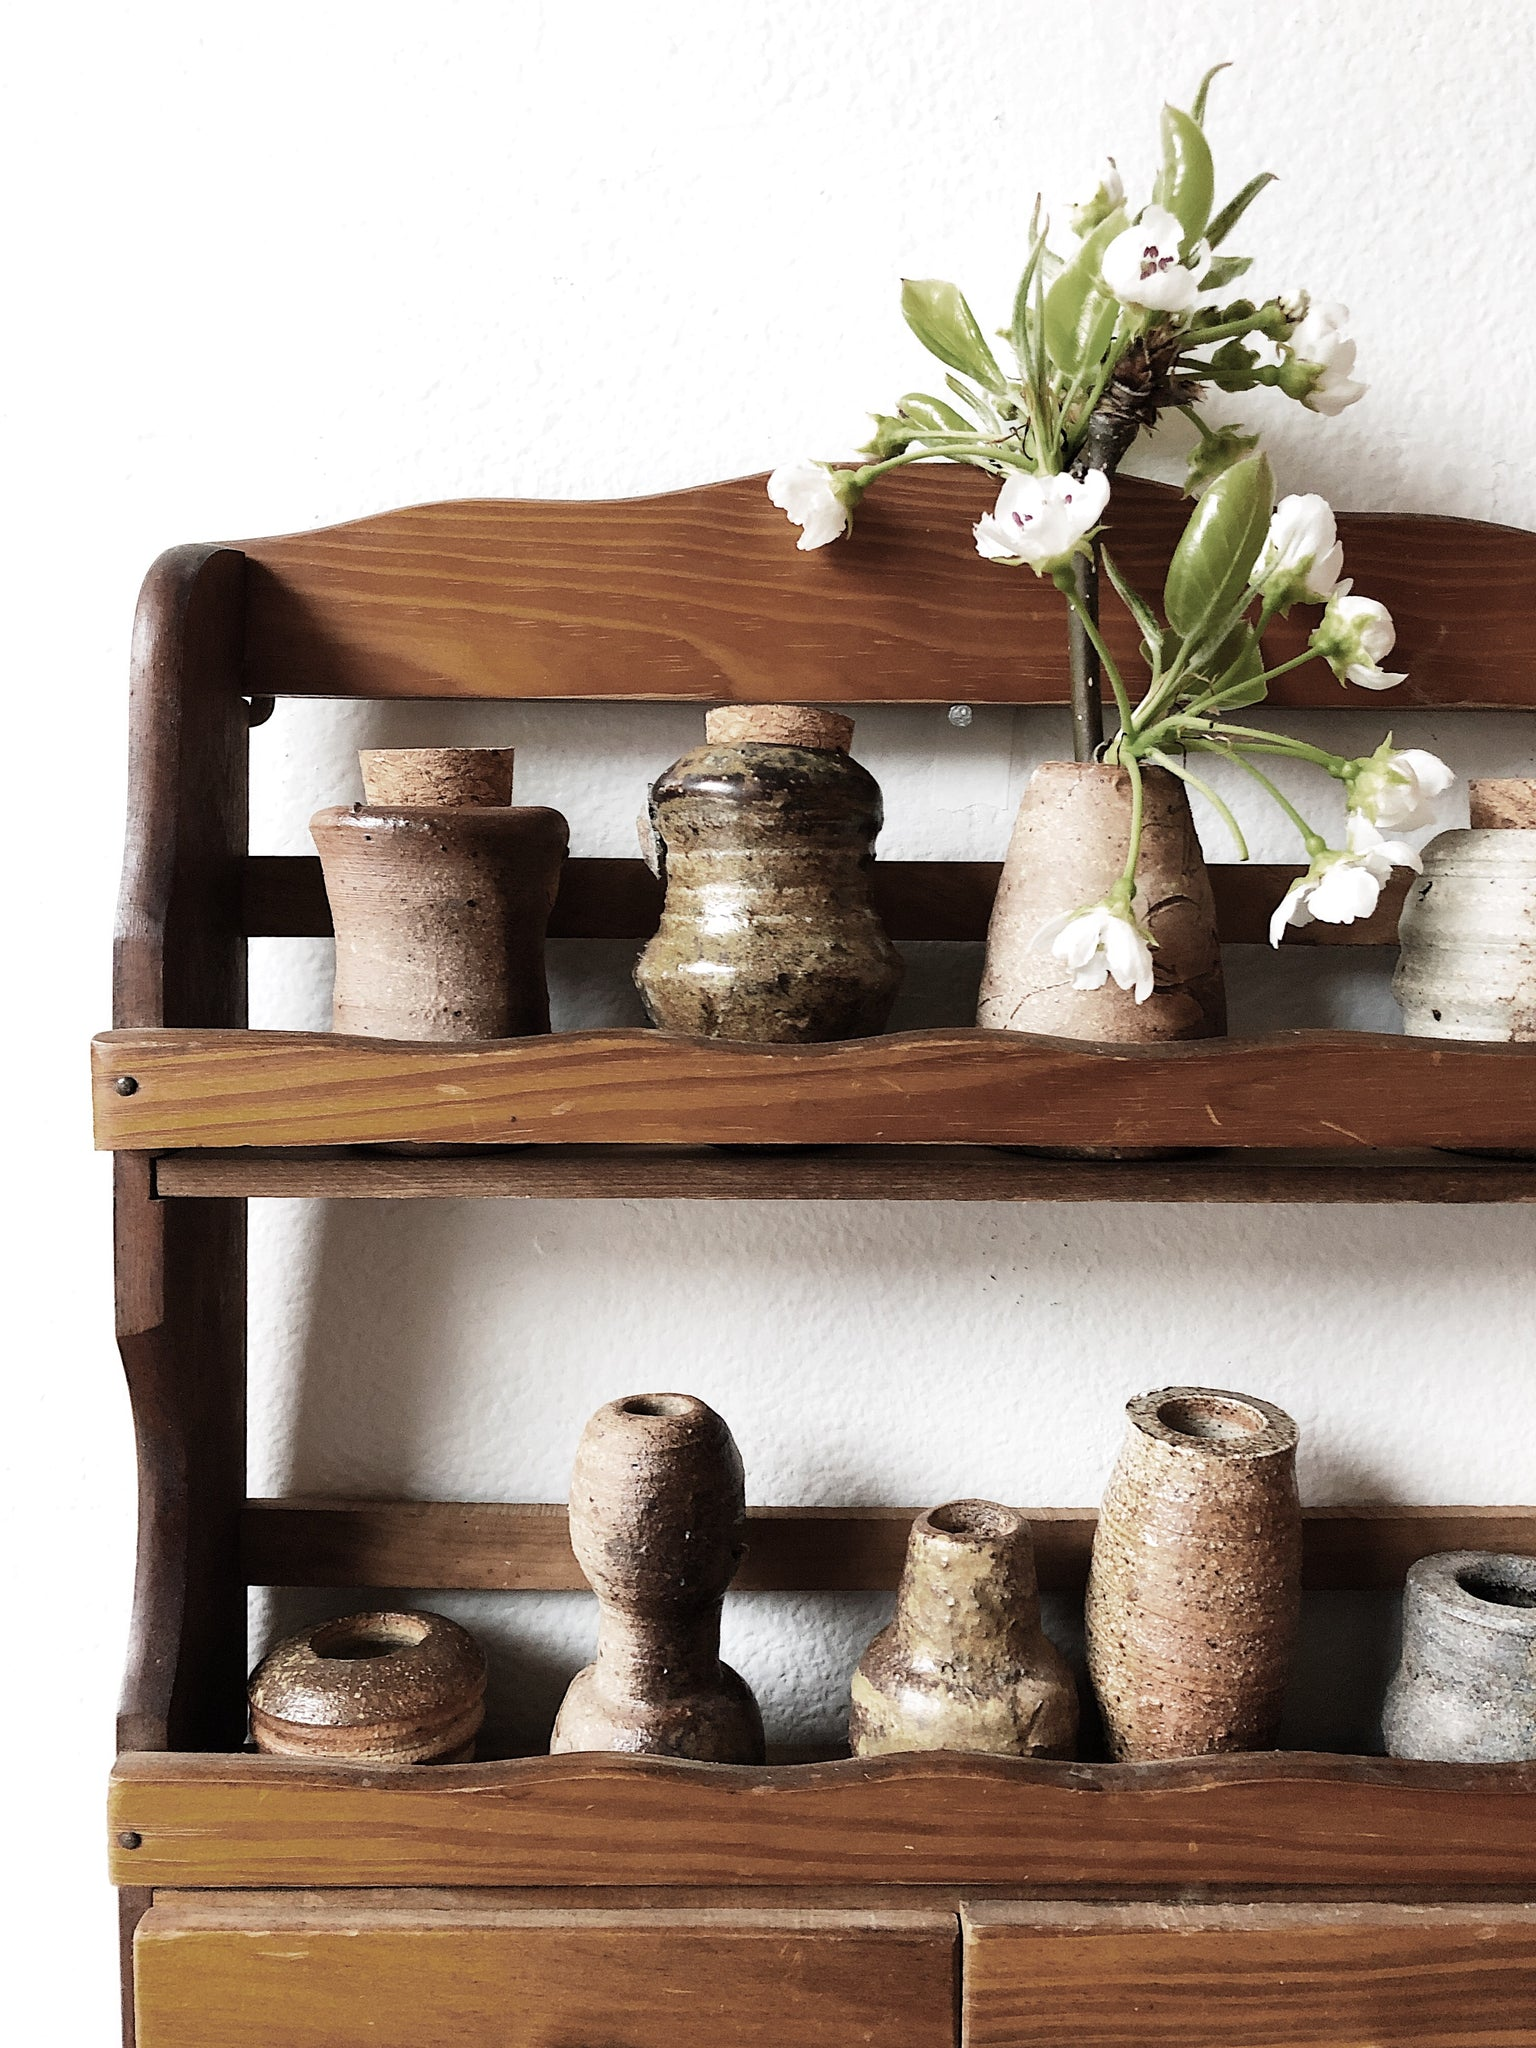 Vintage Wooden Spice Rack and Clay Vessels